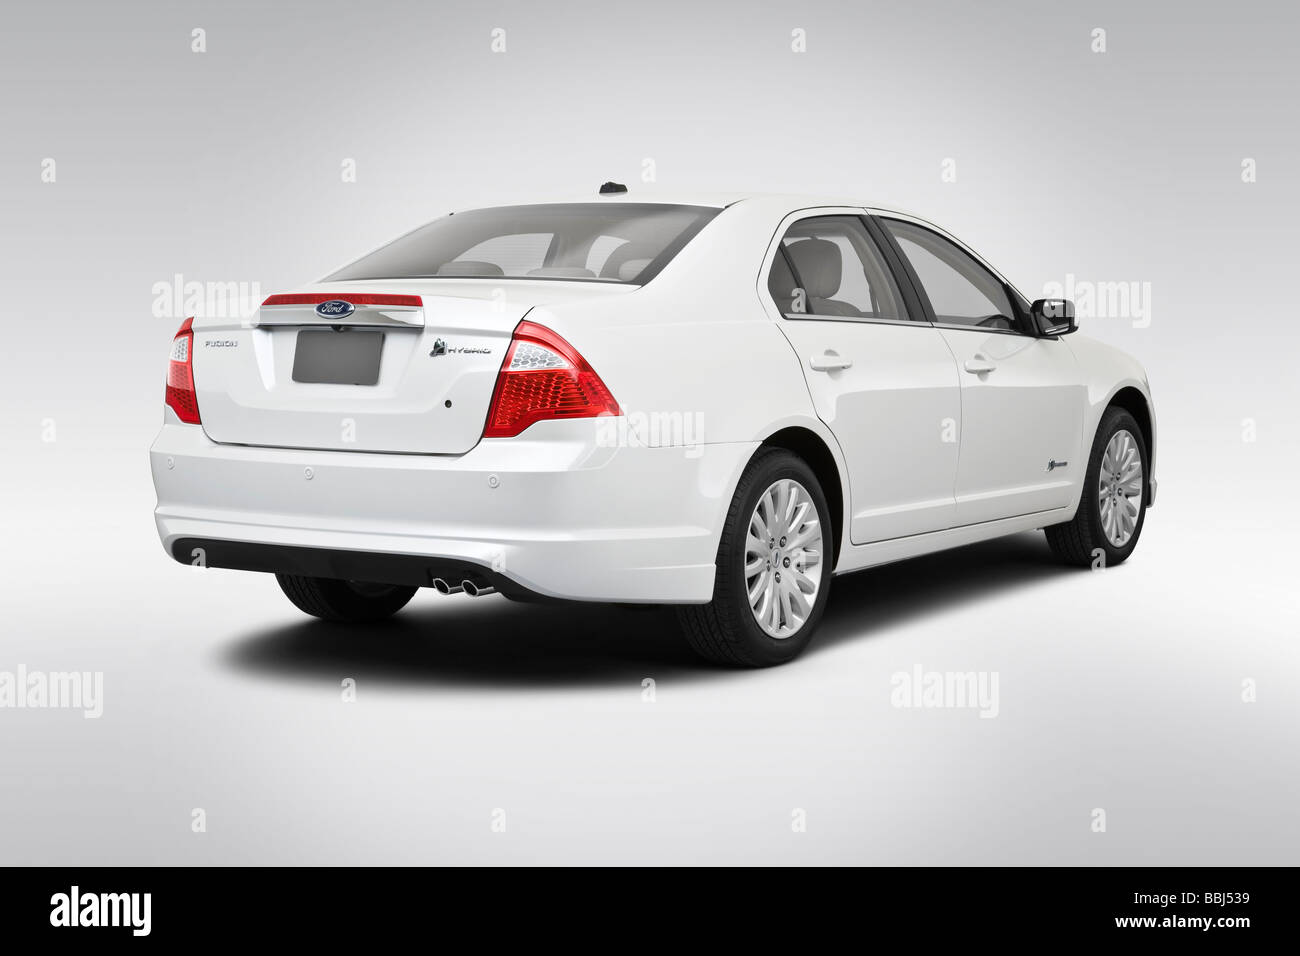 2010 Ford Fusion Hybrid in White - Rear angle view - Stock Image